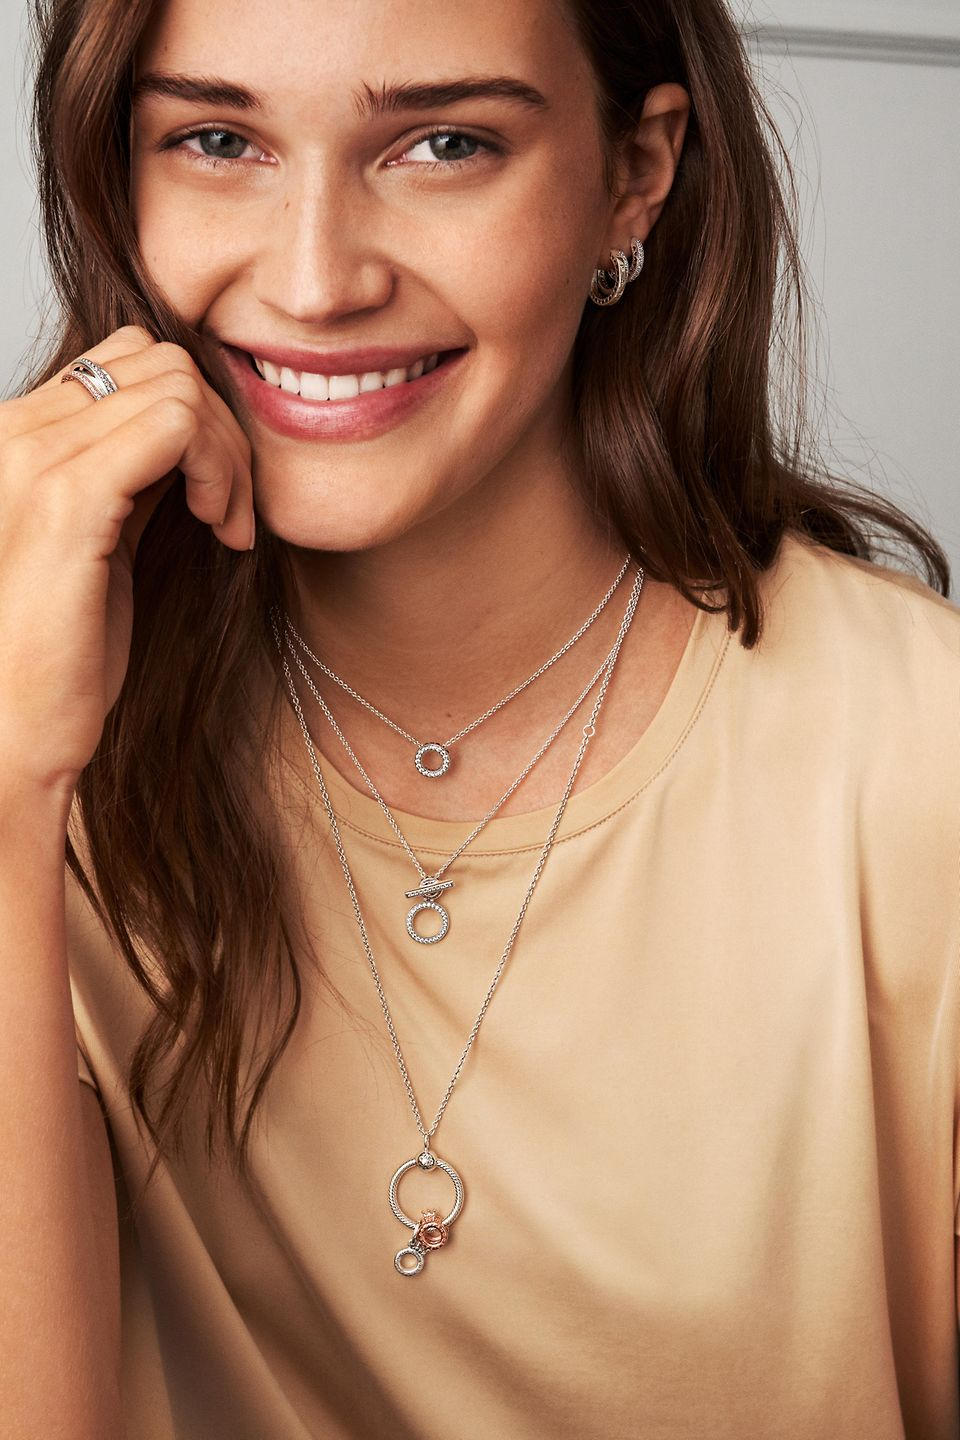 Young woman wearing Pandora Signature collection: necklaces, rings and earrings